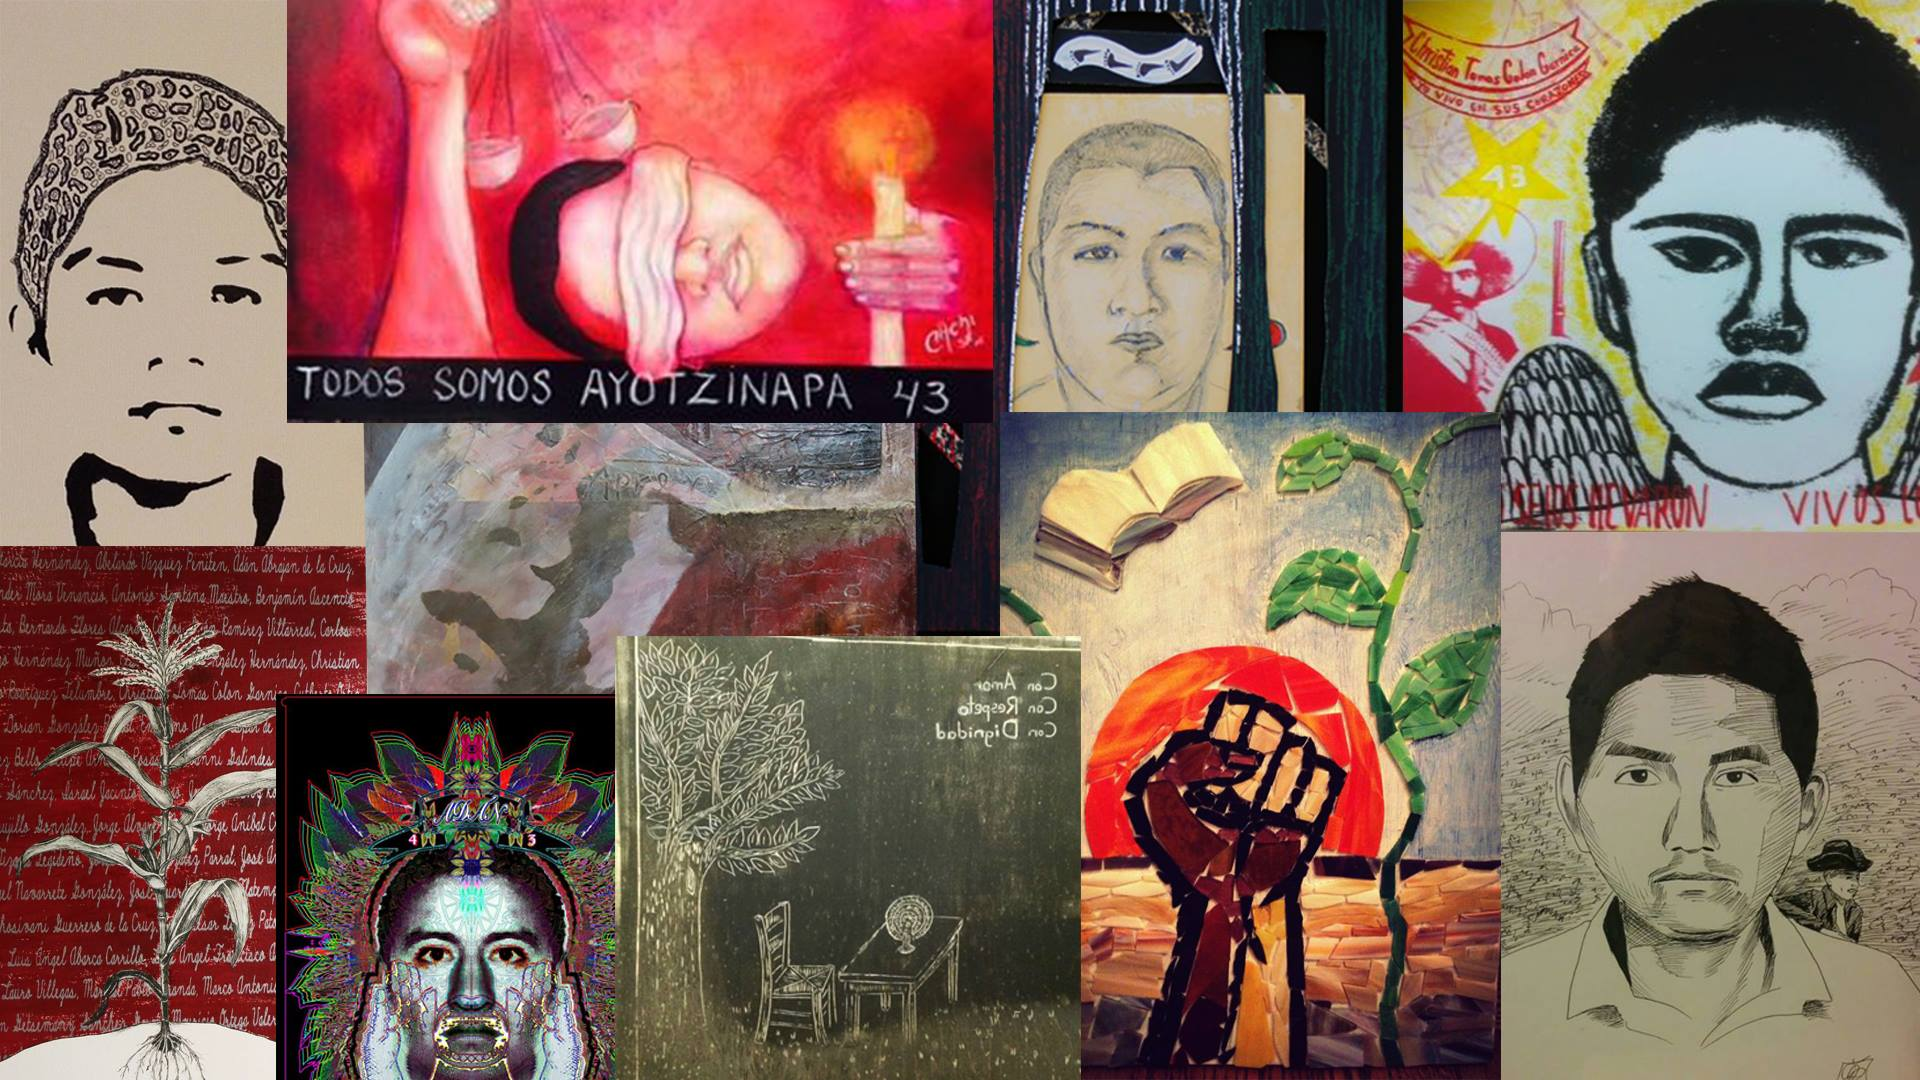 Bay Area artists have created 43 works to raise awareness about 43 Mexican students who disappeared in September 2014 and are presumed to have been murdered.